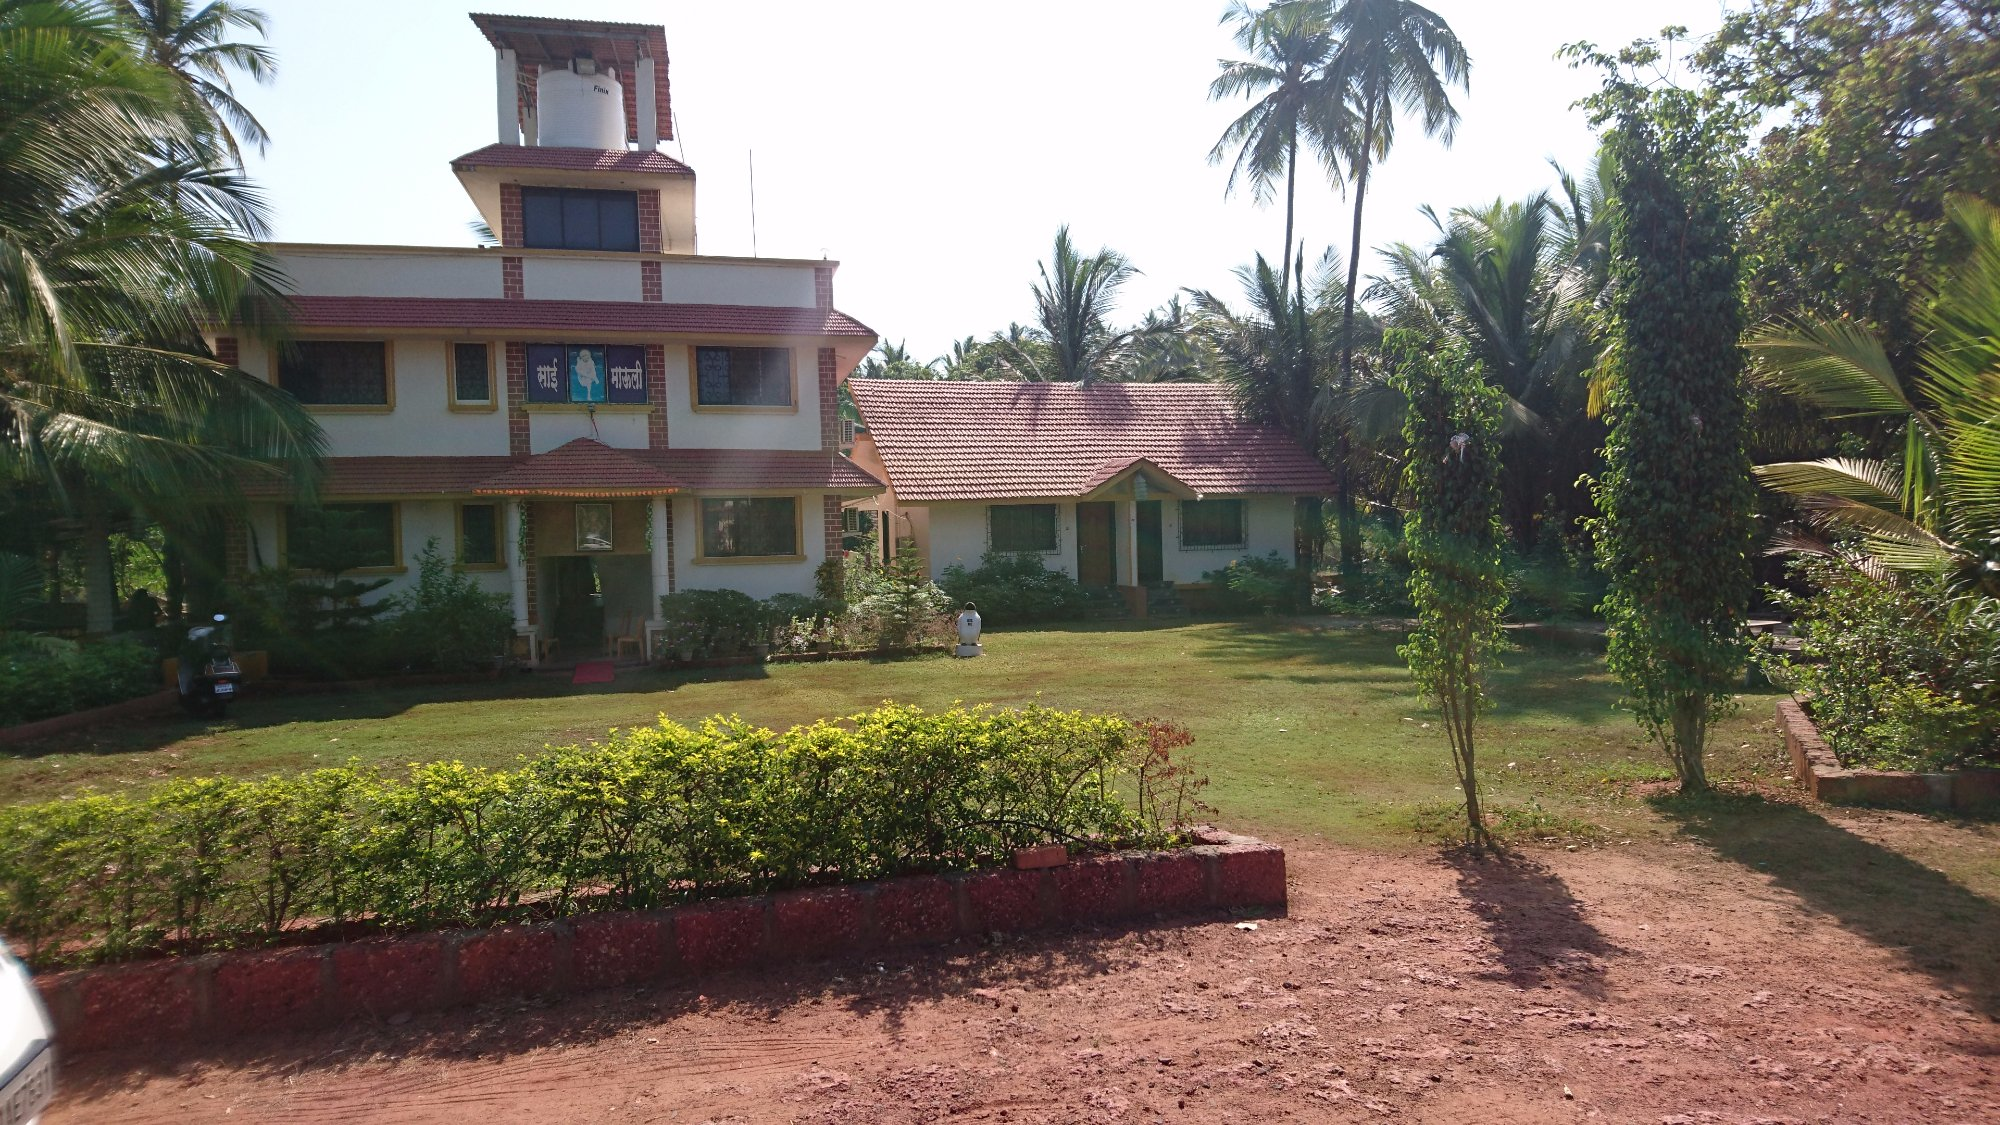 Sai Mauli Home stay